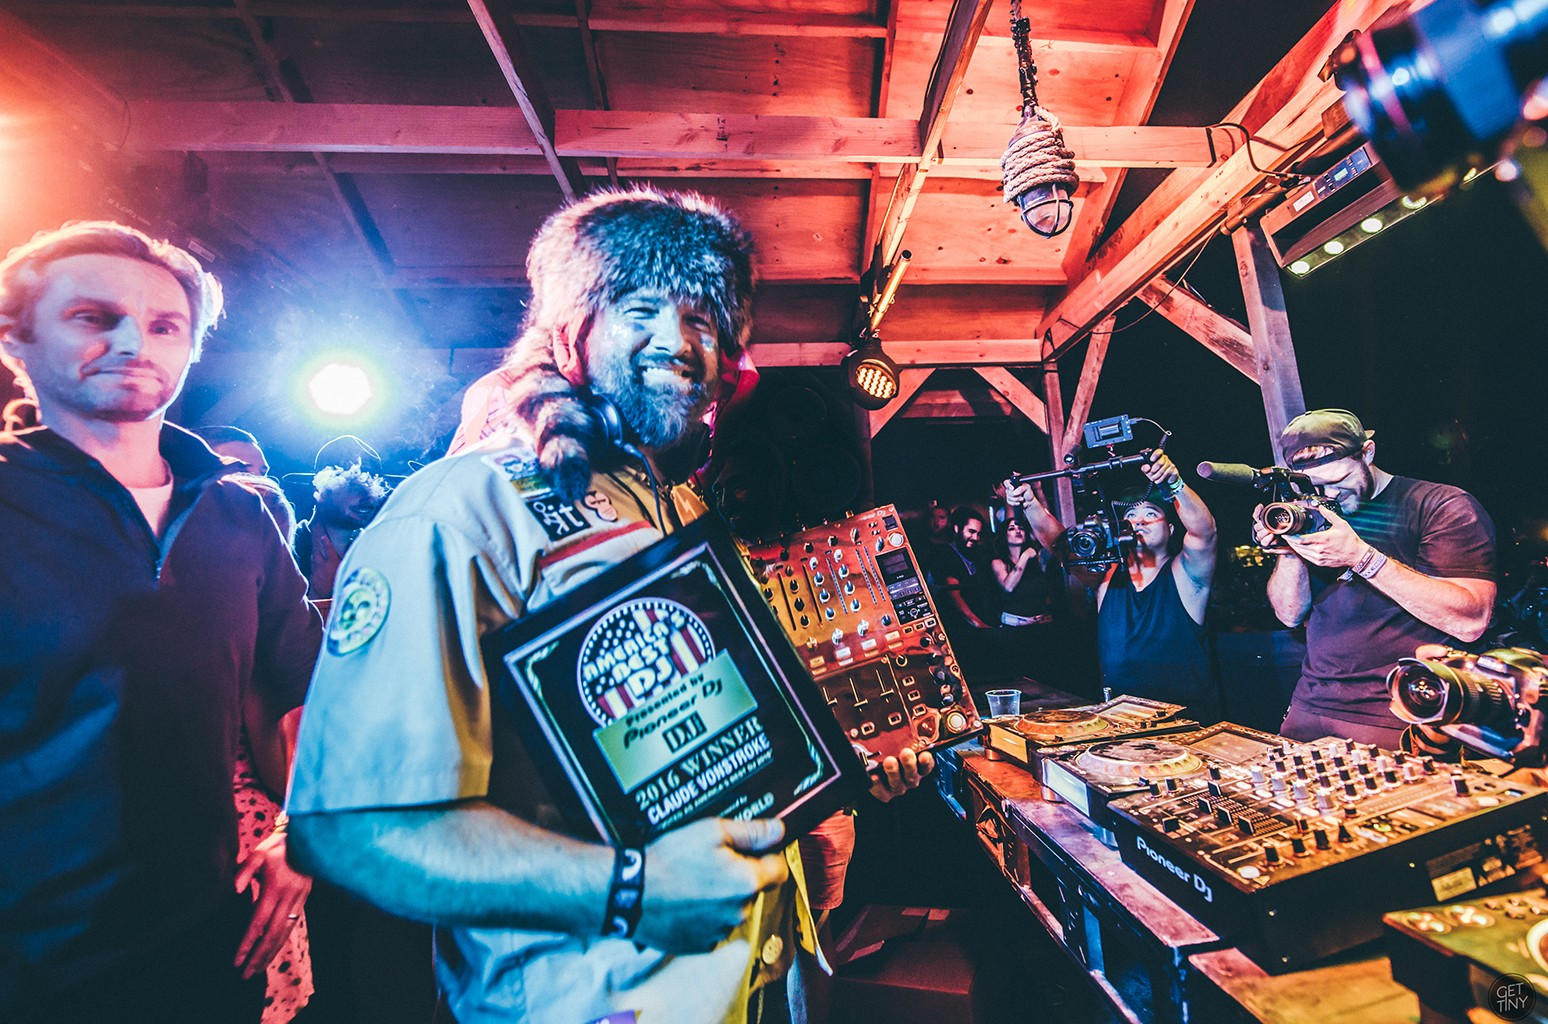 Claude VonStroke at Dirtybird Campout.